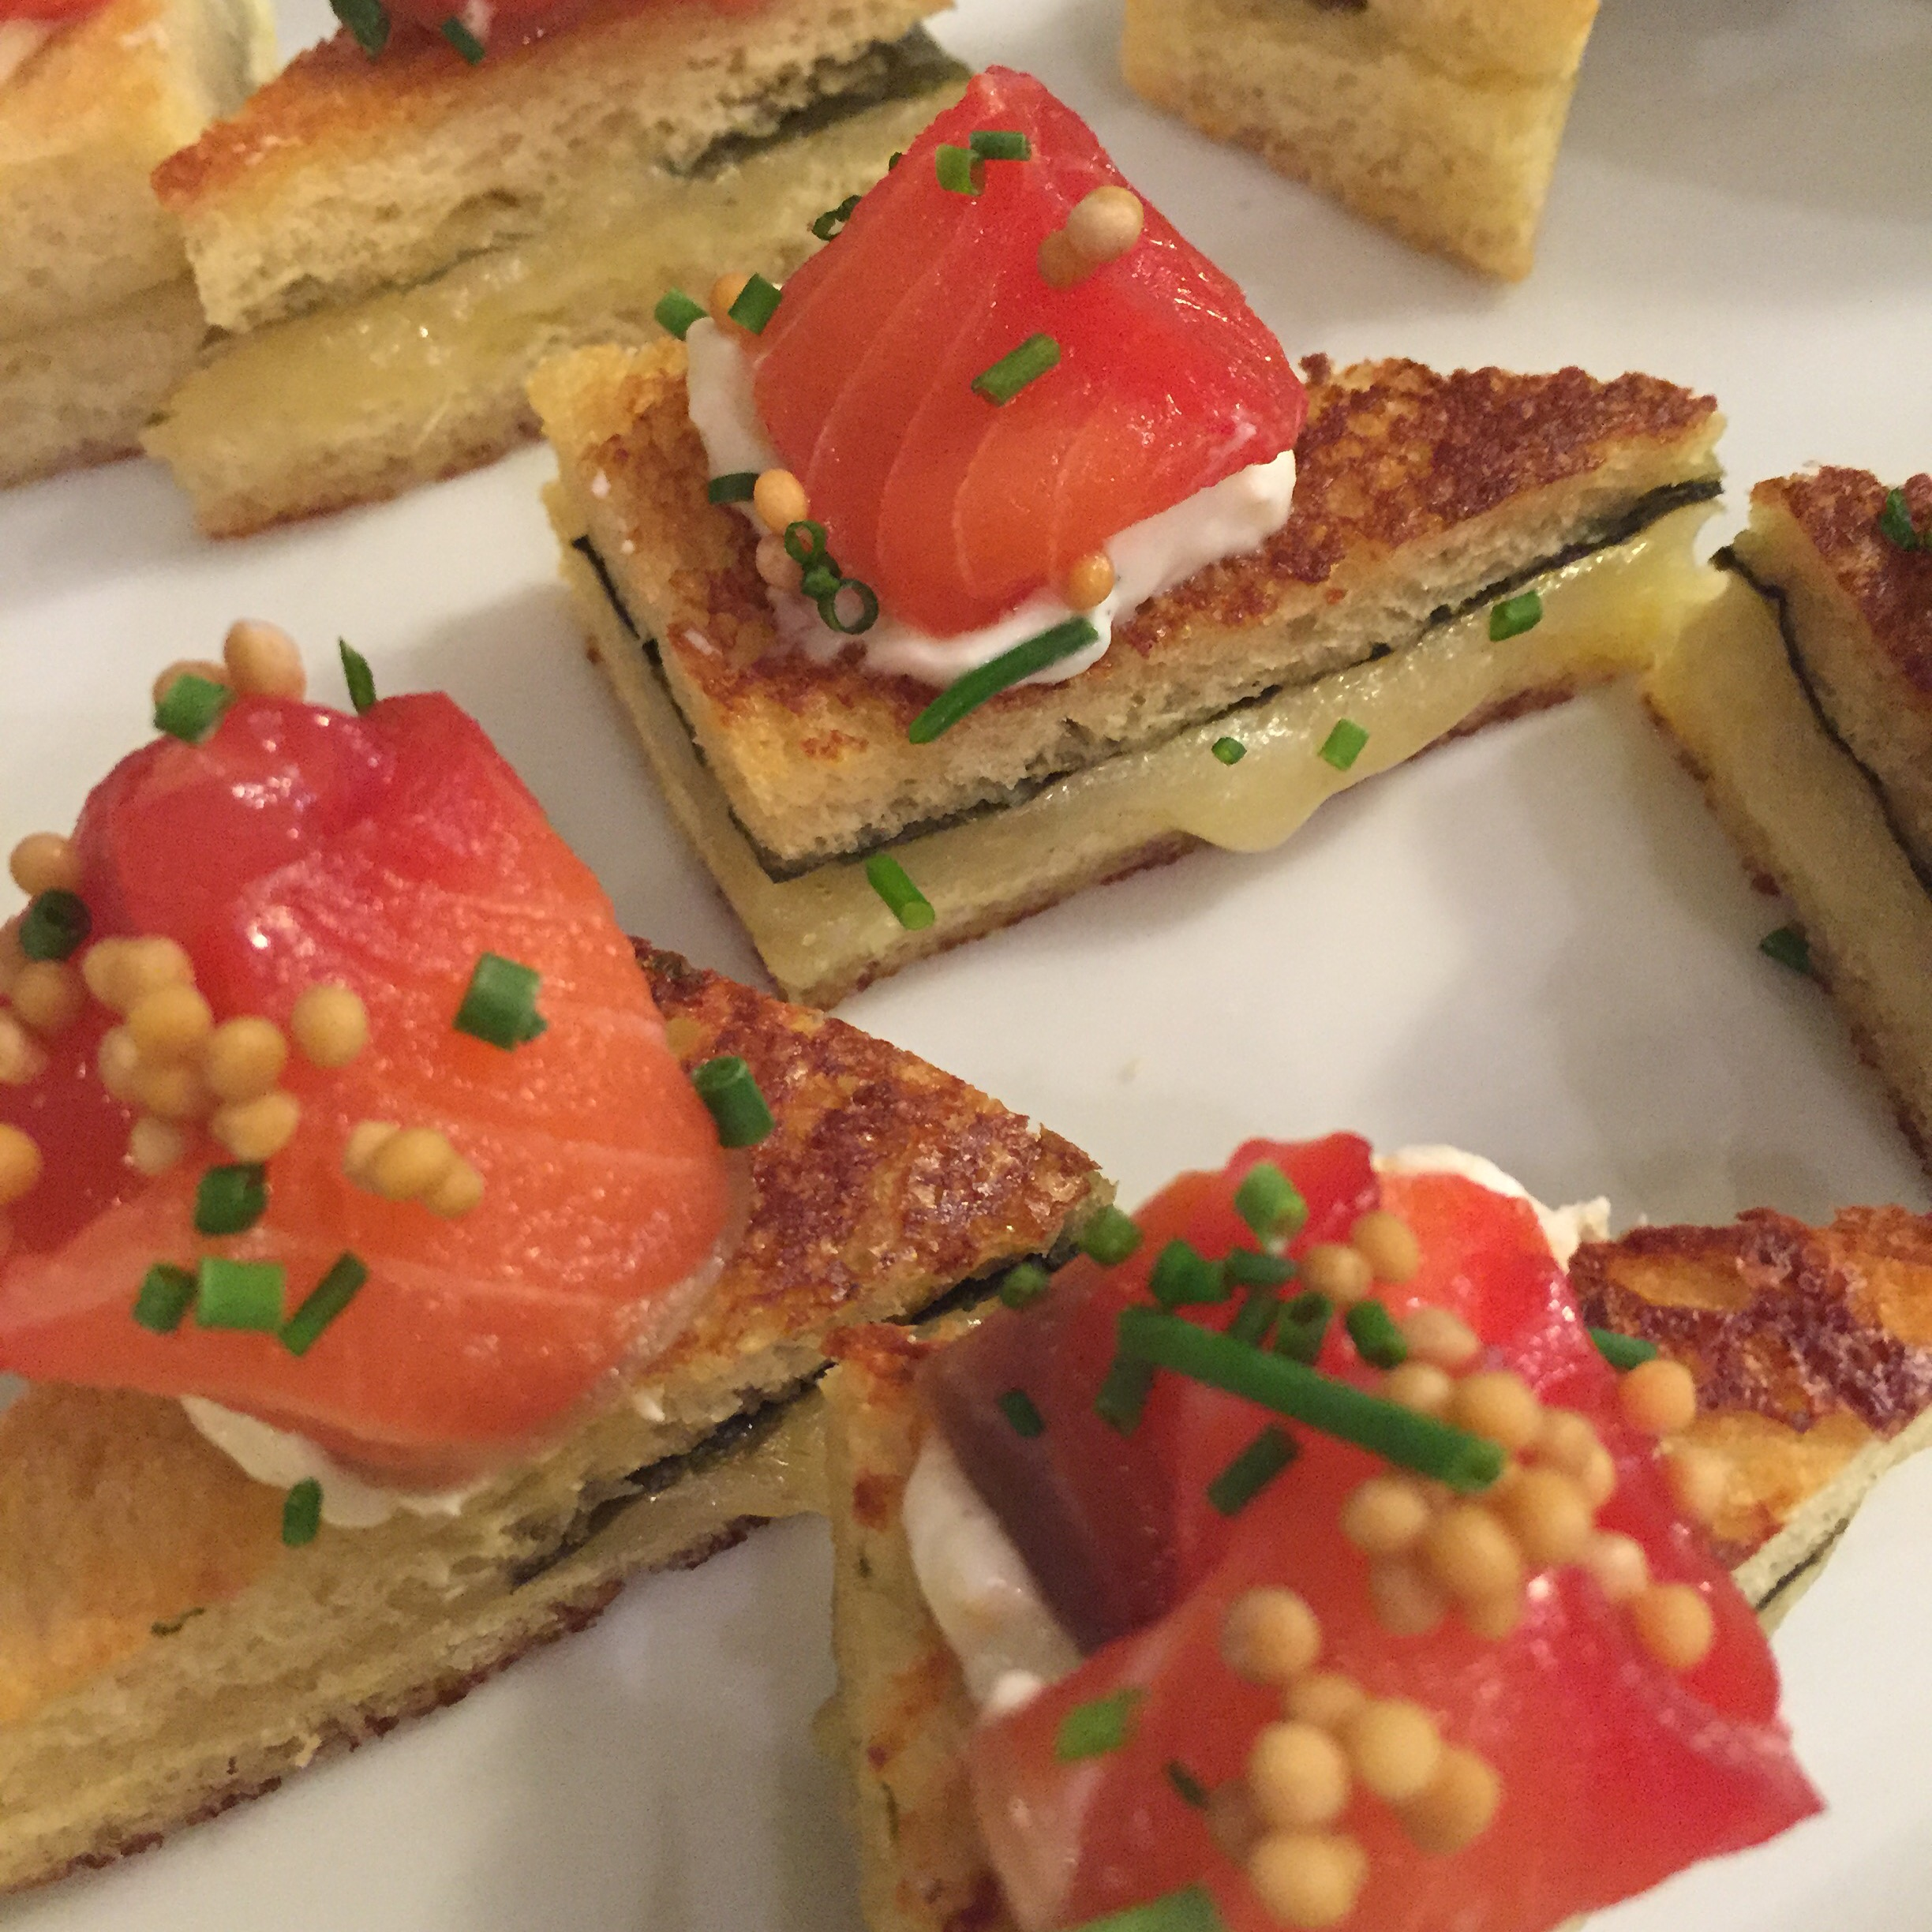 Beet-Cured Salmon on Grilled Cheese